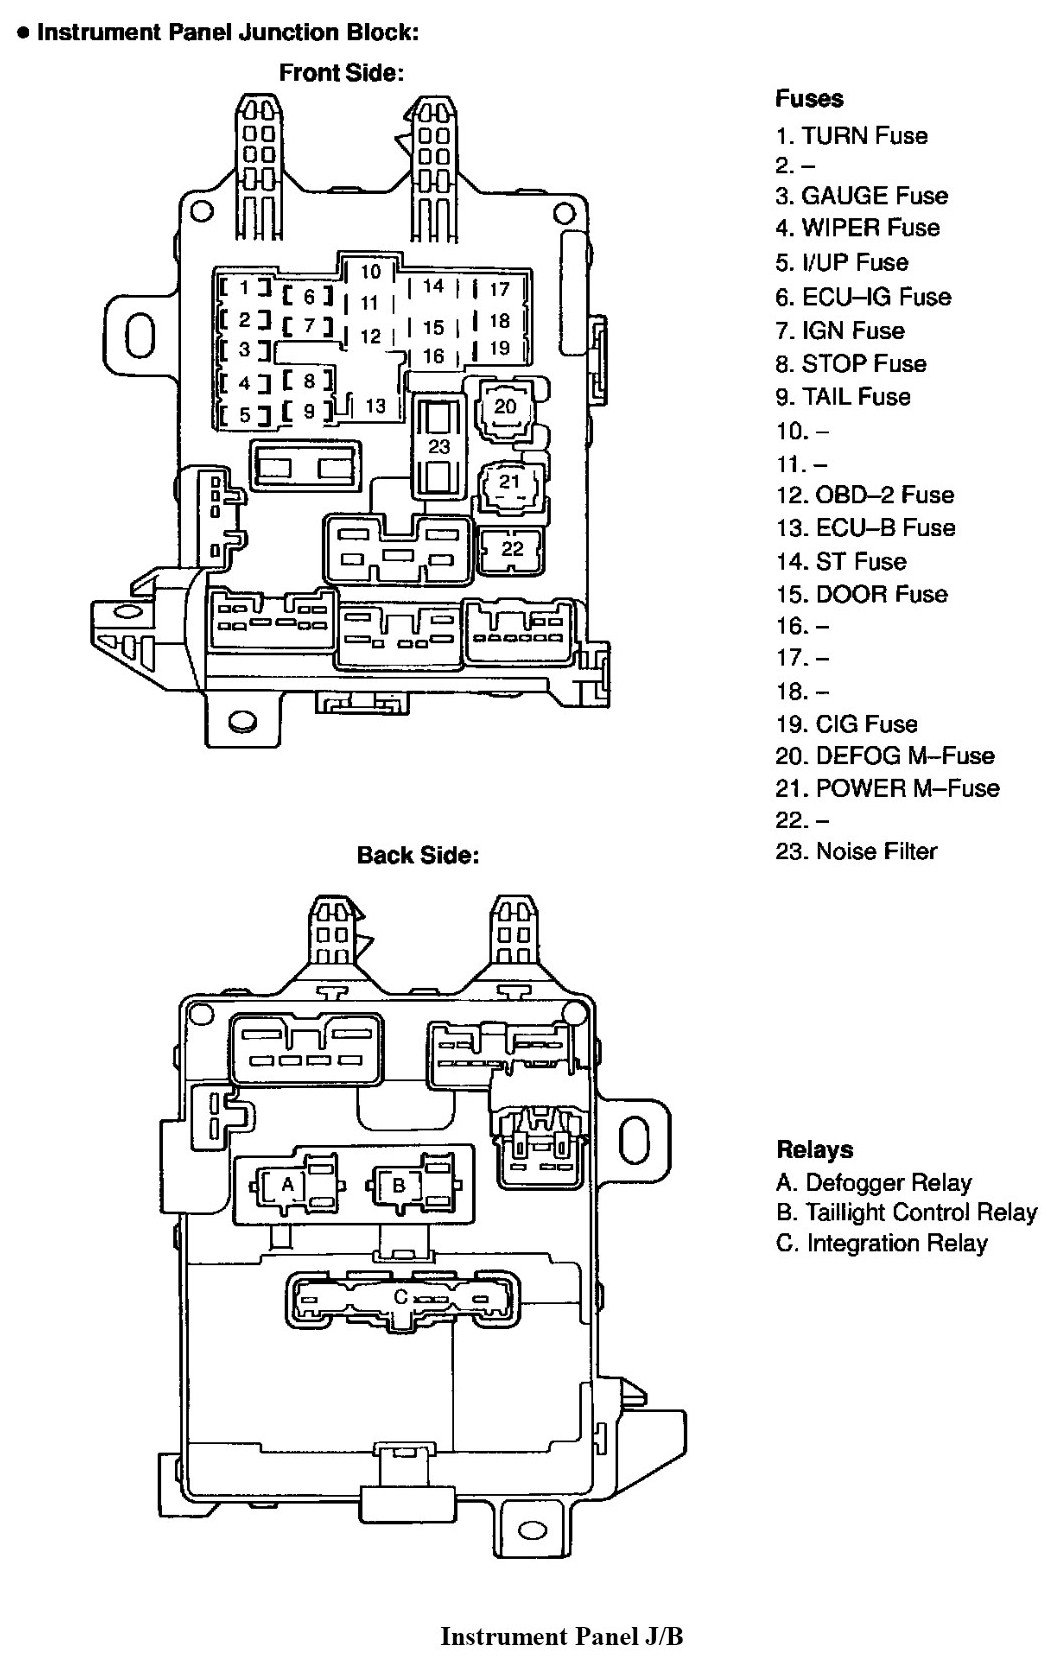 2003 Toyota Corolla Fuse Box Diagram Exploded Wiring Libraries 2008 Honda Accord Relay For 2002 Simple Schema2001 Location